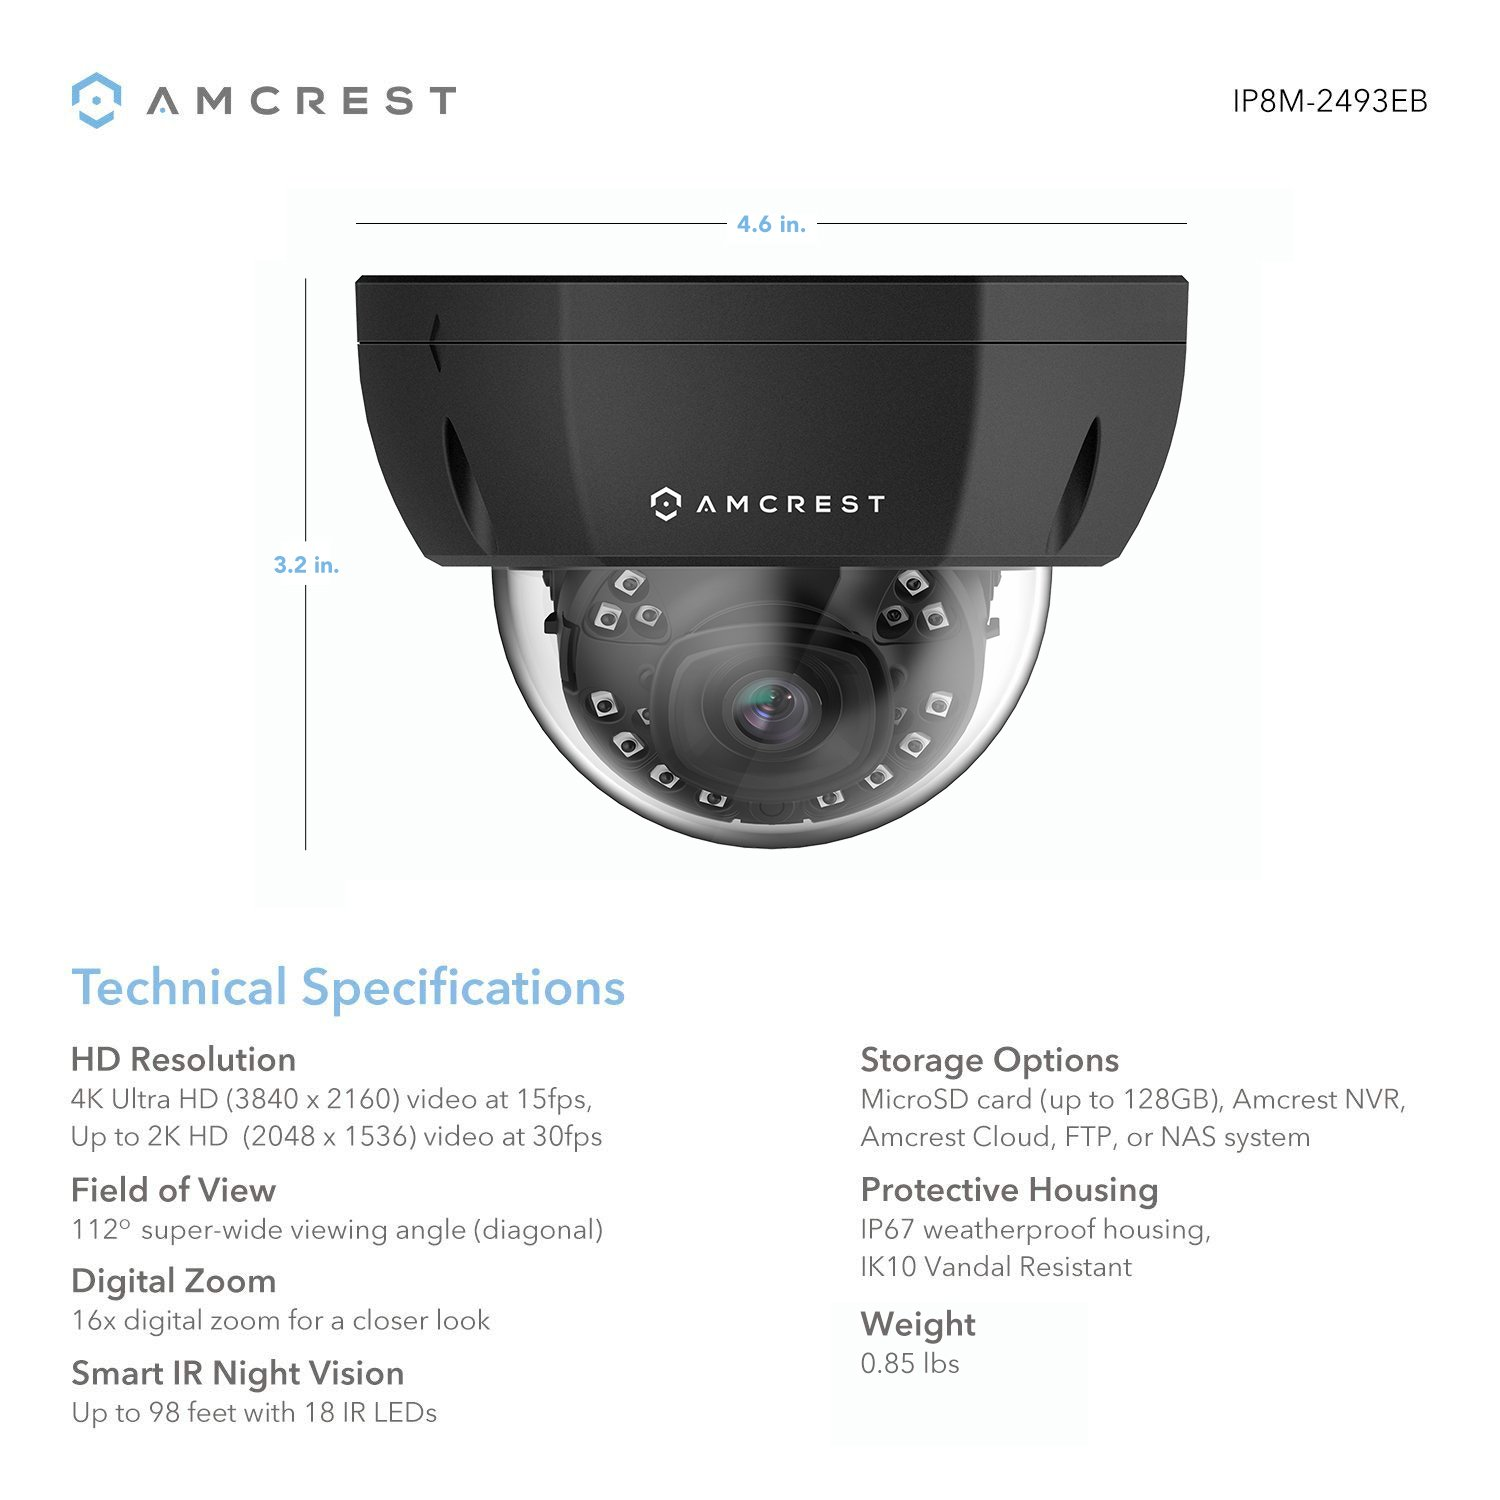 Amcrest 4K Outdoor POE IP Camera, UltraHD 8MP Security Camera, 3840x2160P  Resolution, IK10 Vandal Resistant Dome, 2 8mm Lens, IP67 Weatherproof